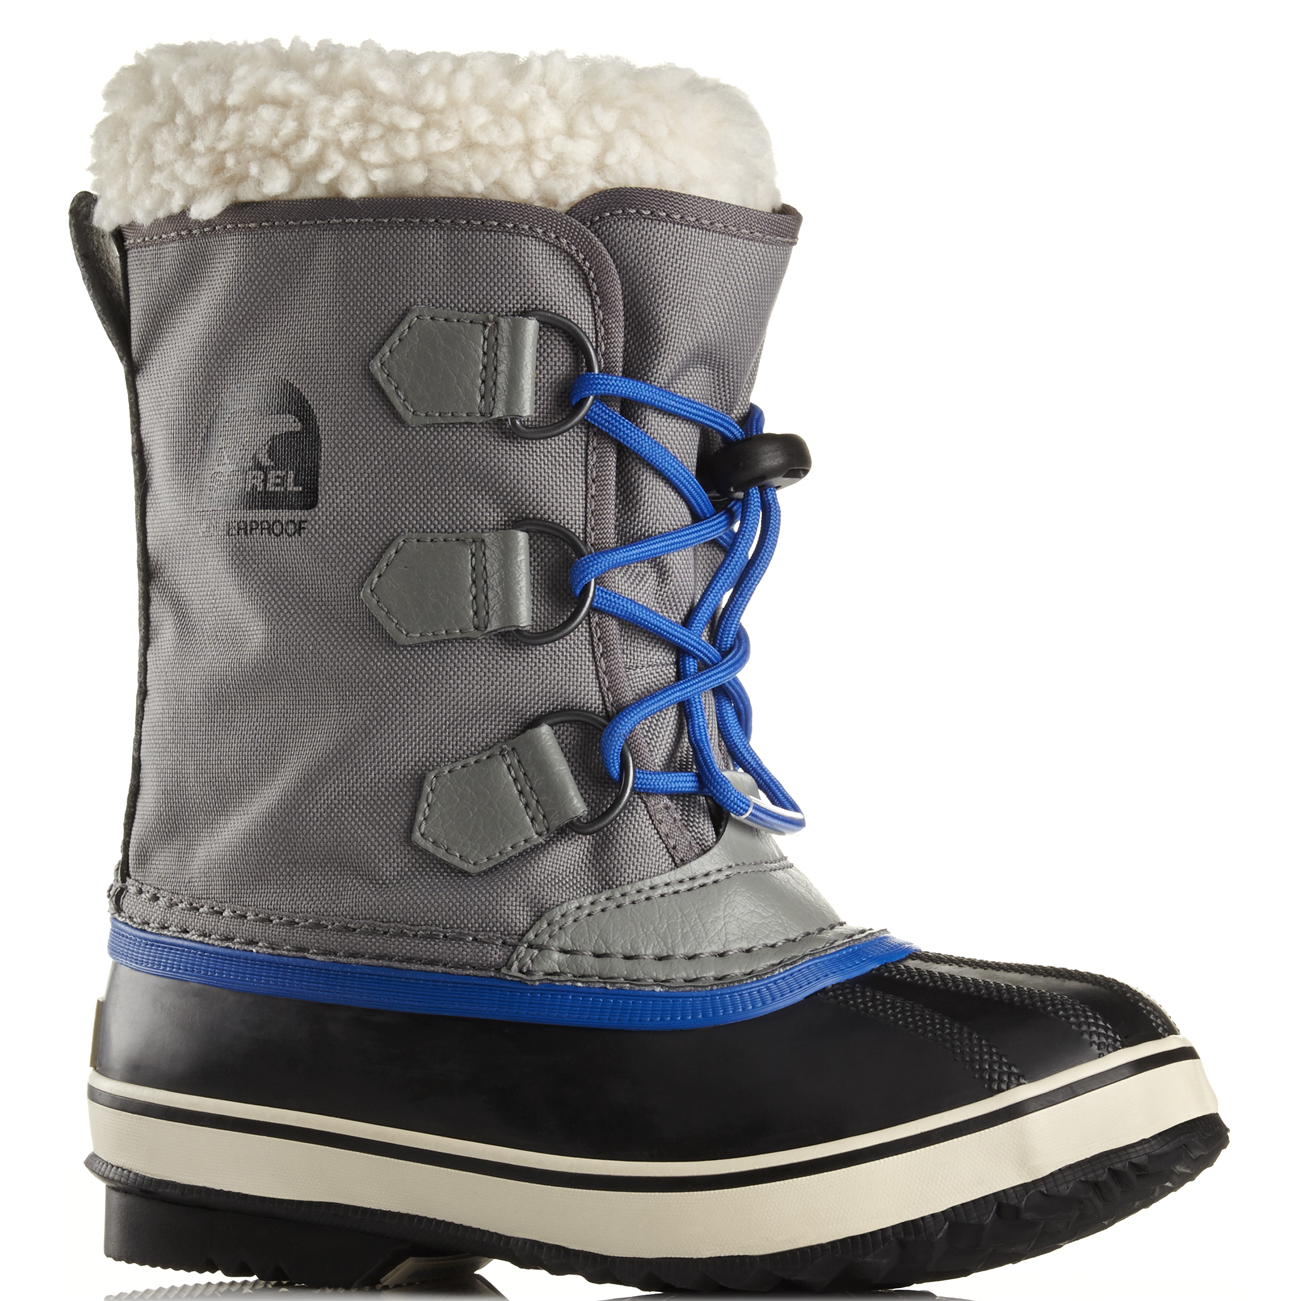 Free shipping BOTH ways on kids boots, from our vast selection of styles. Fast delivery, and 24/7/ real-person service with a smile. Click or call